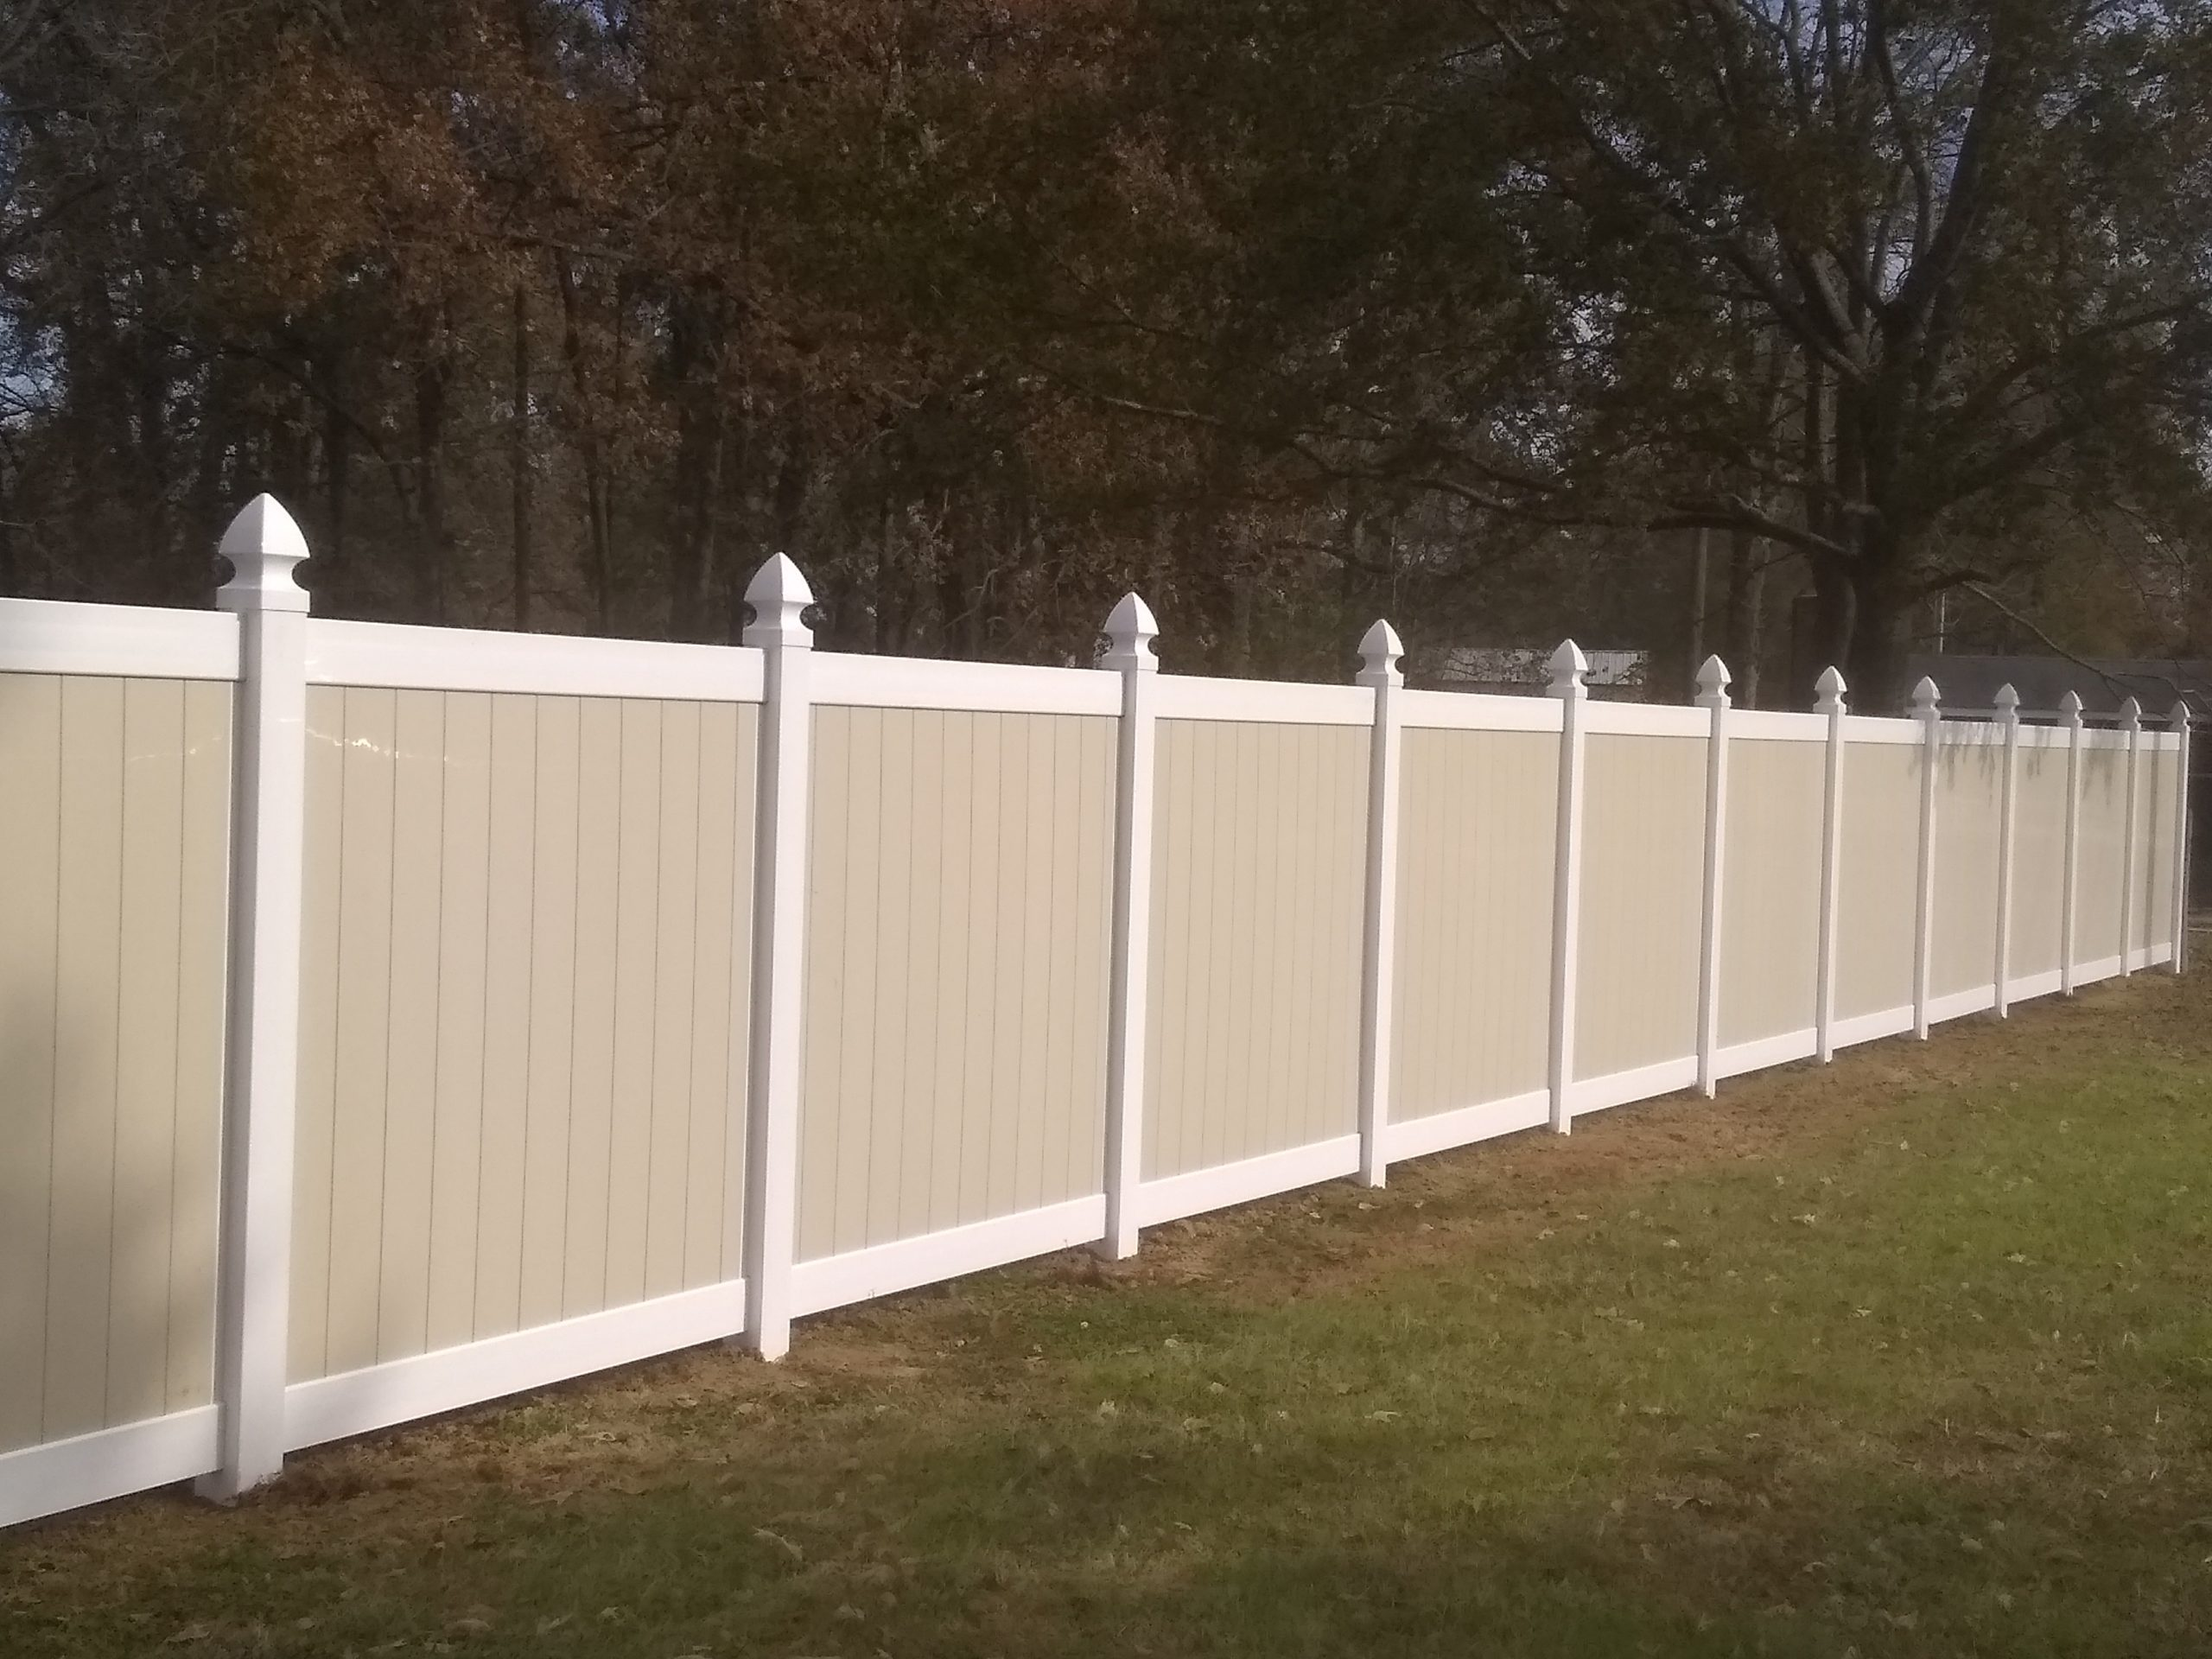 What Fence Lasts the Longest?